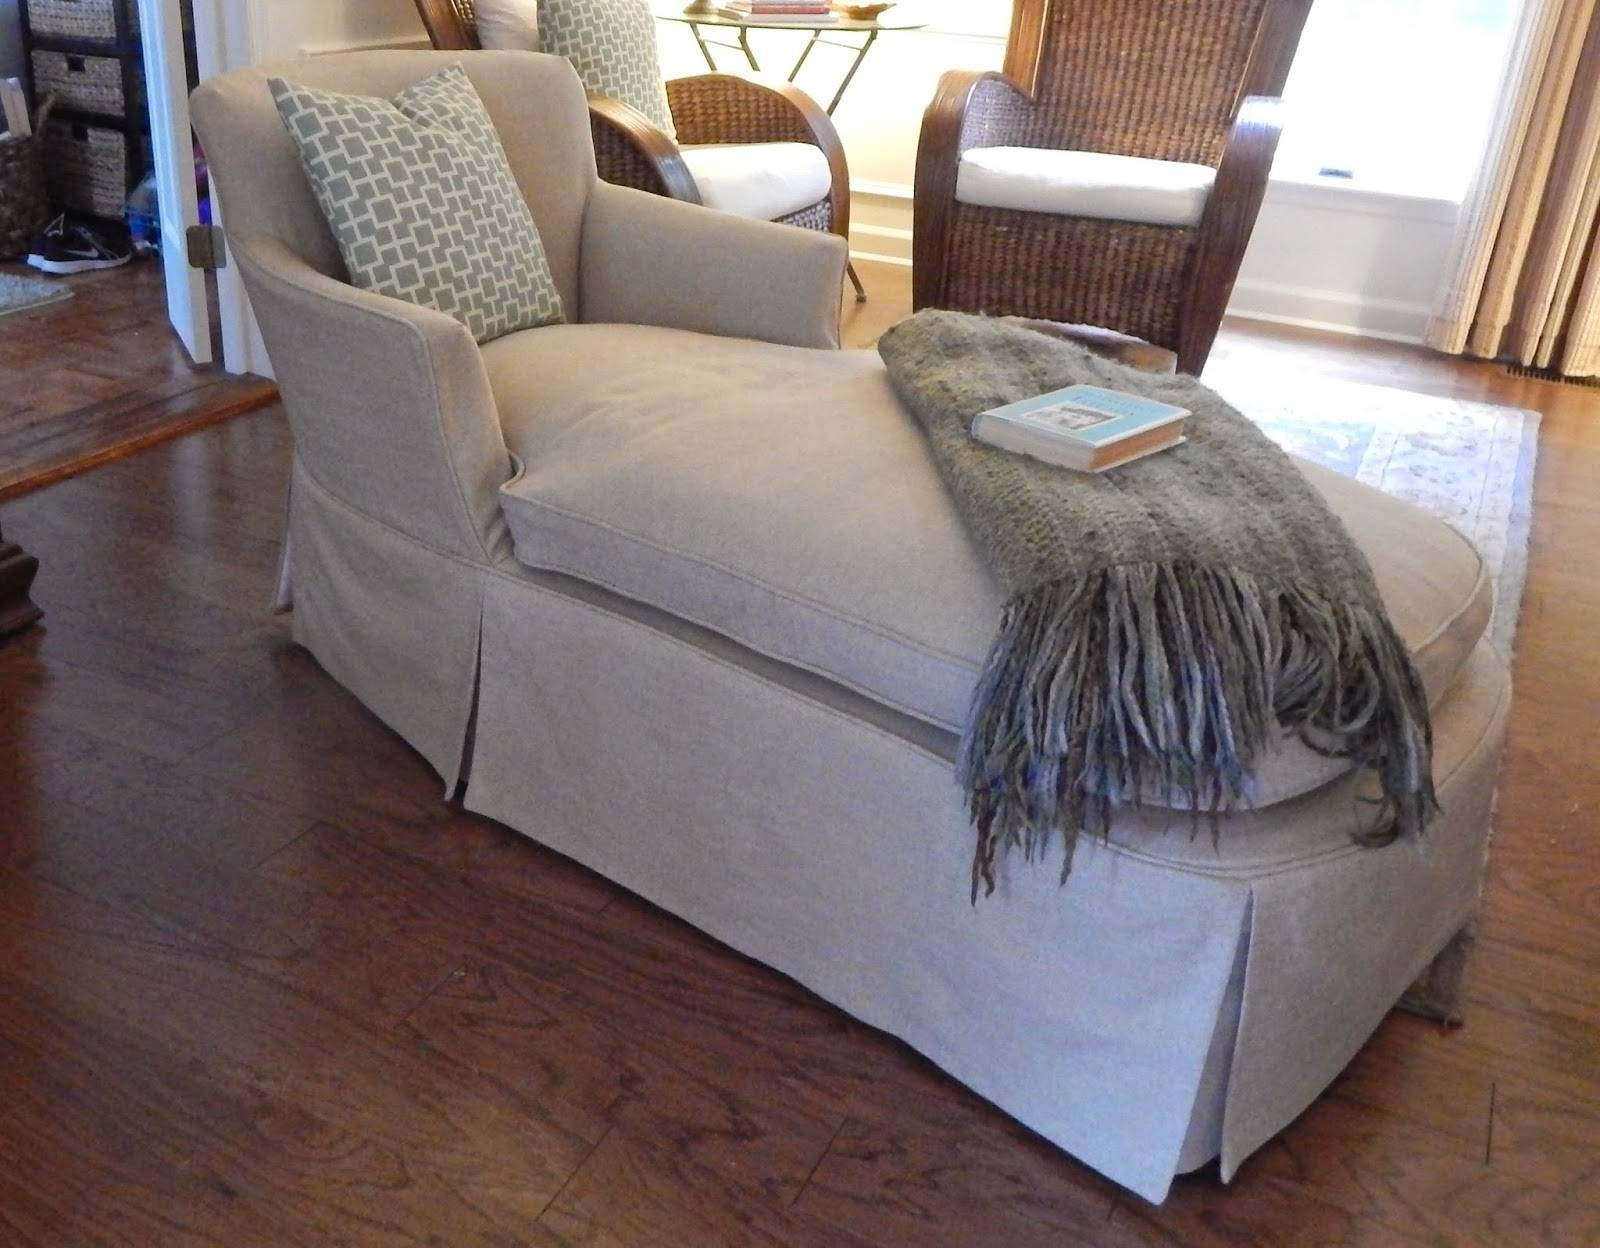 Pam Morris Sews: Chaise Lounge regarding Slipcovers for Chaise Lounge Sofas (Image 13 of 15)